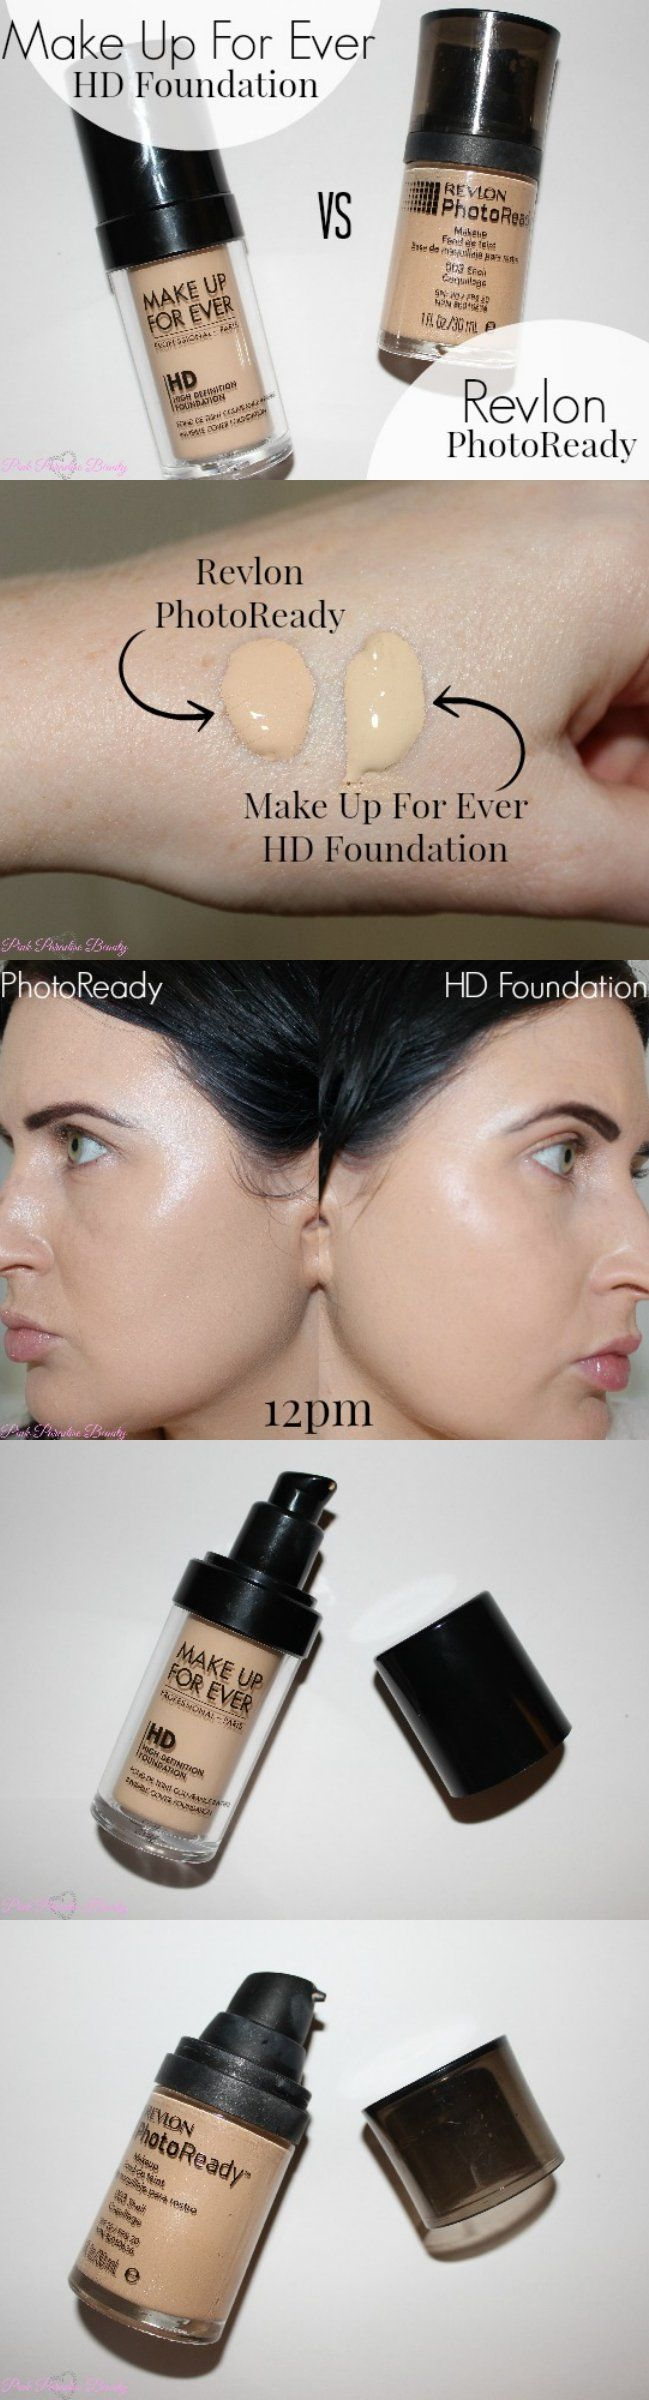 Revlon Photoready Foundation VS Make Up For Ever HD